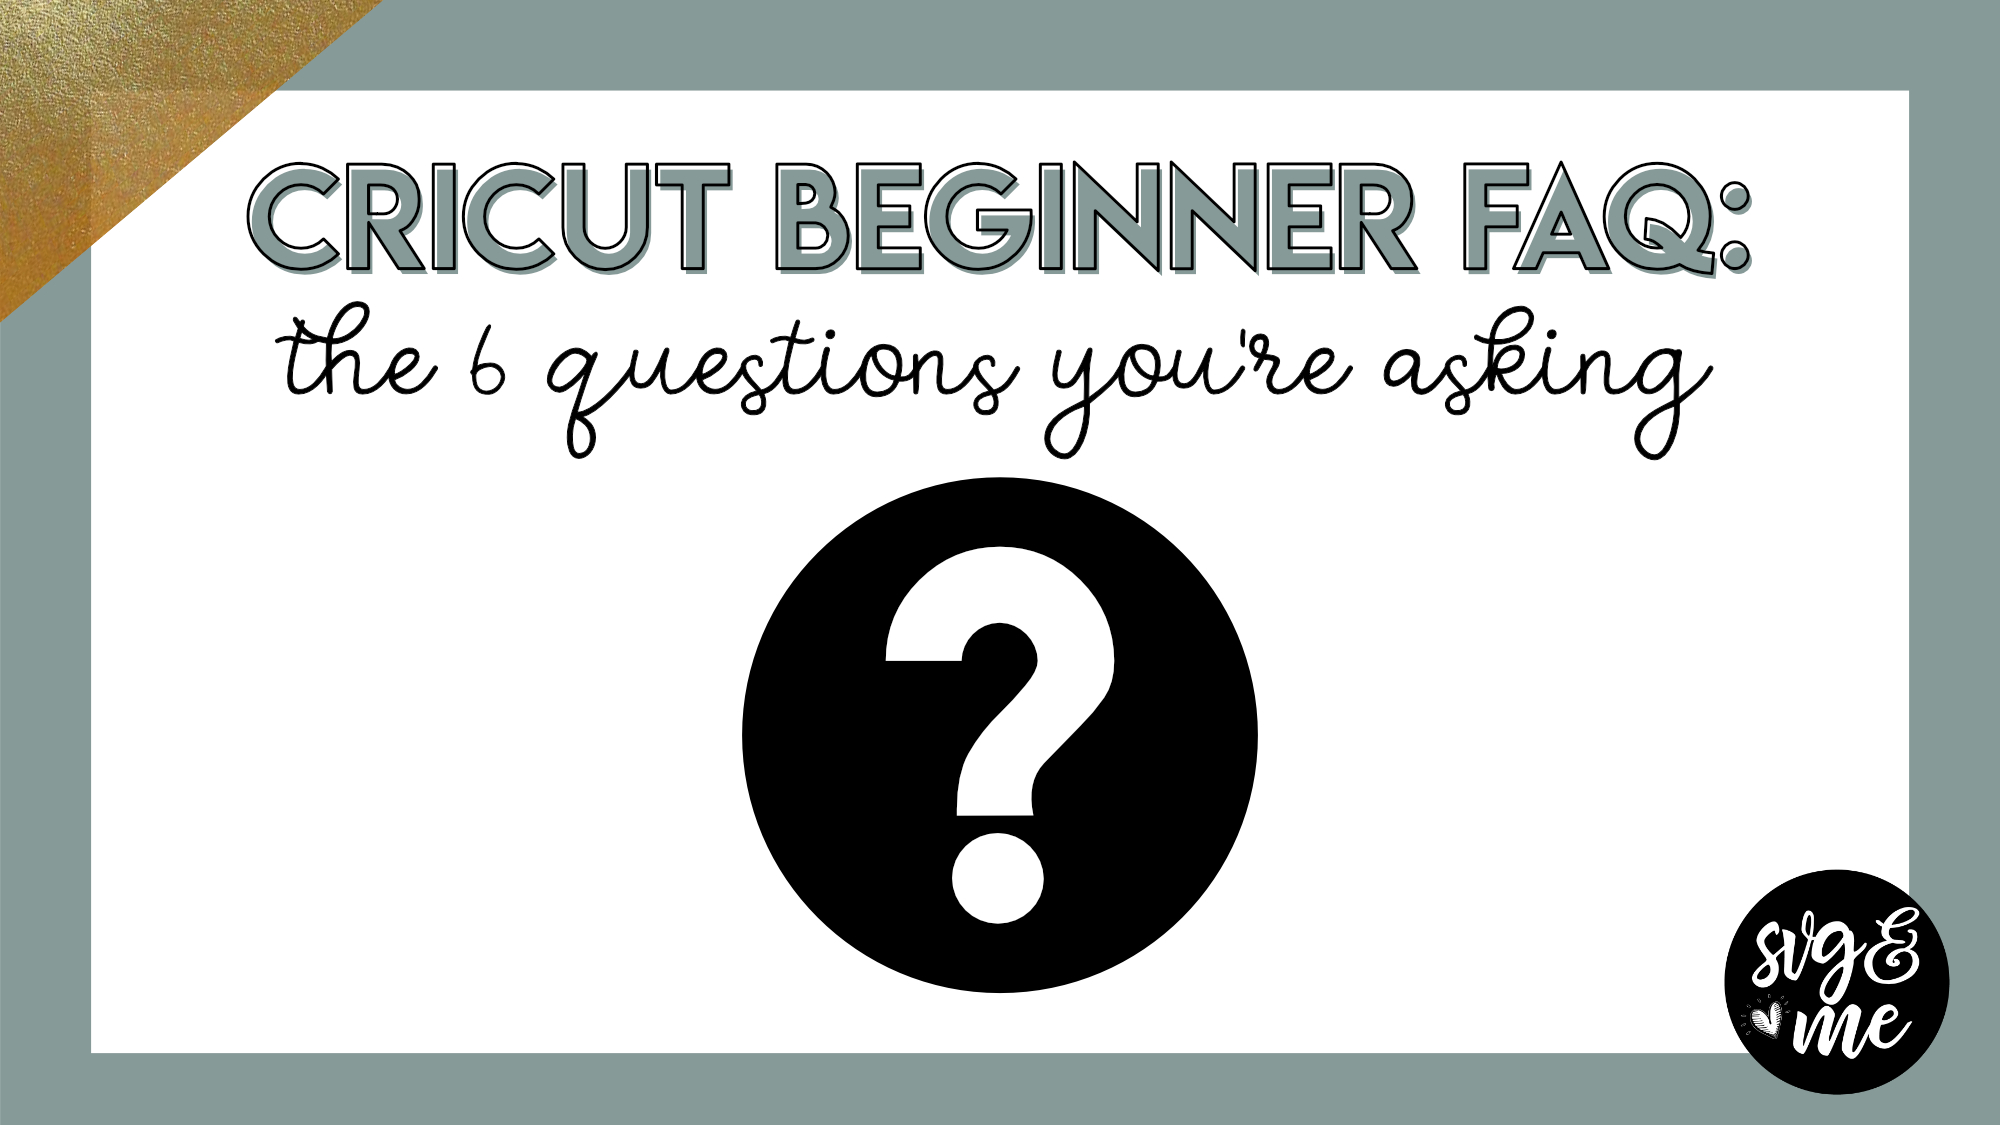 adc332c1a 6 Top Questions Every Cricut Beginner Wants to Know - SVG & Me